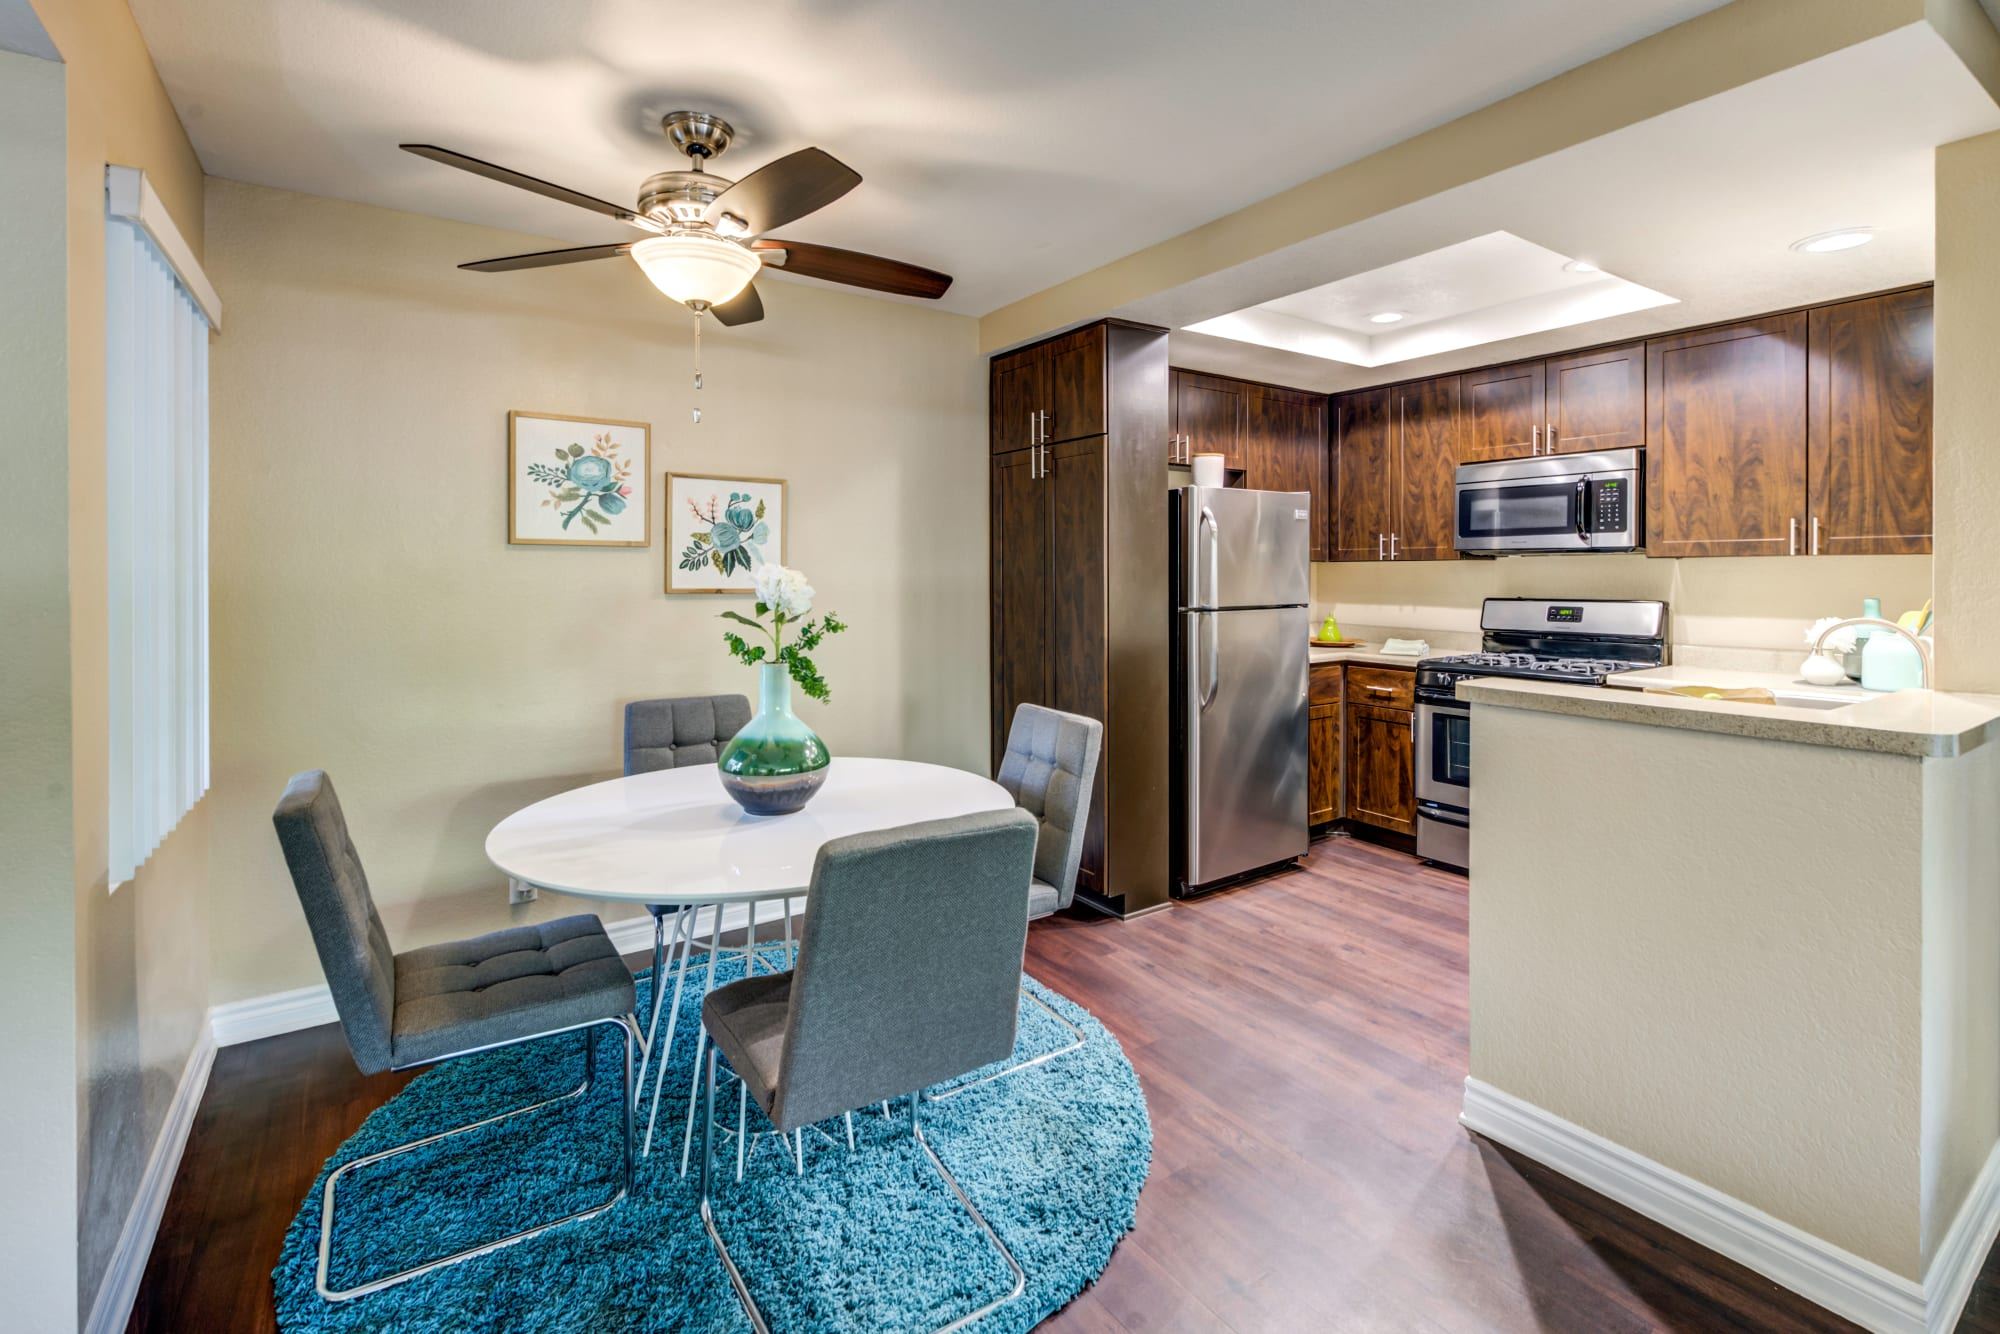 Renovated kitchen with brown cabinets and dining area at Village Oaks in Chino Hills, California